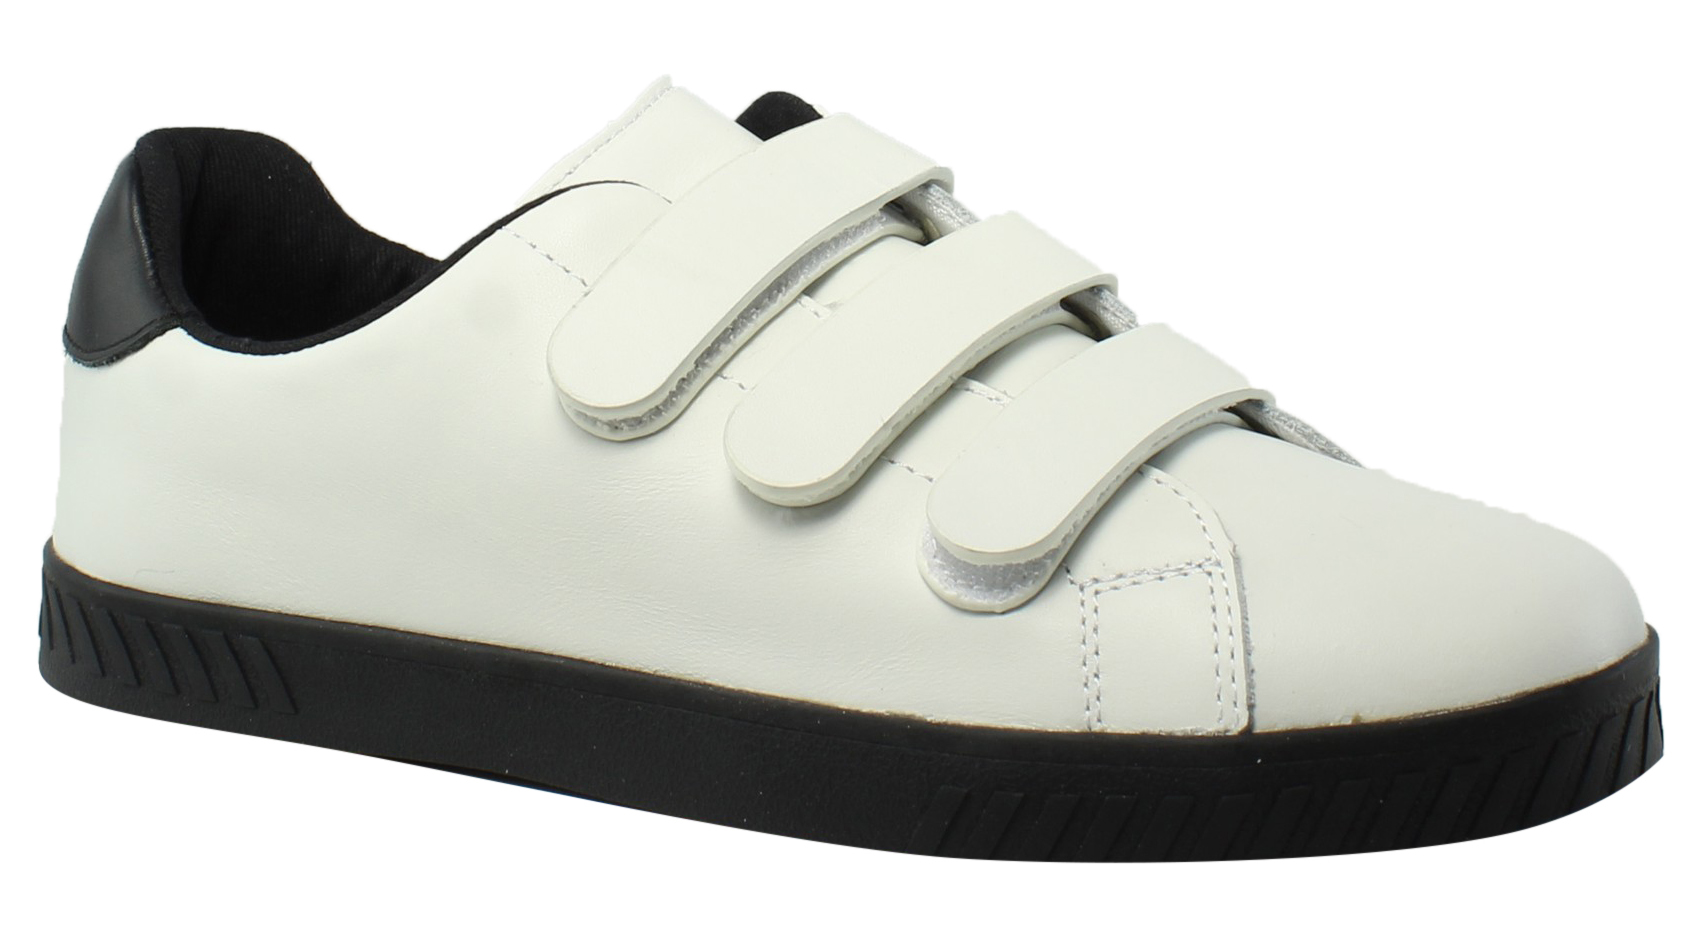 New Tretorn Womens Wt Carry 2 White Black Fashion Shoes Size 9.5 by Tretorn